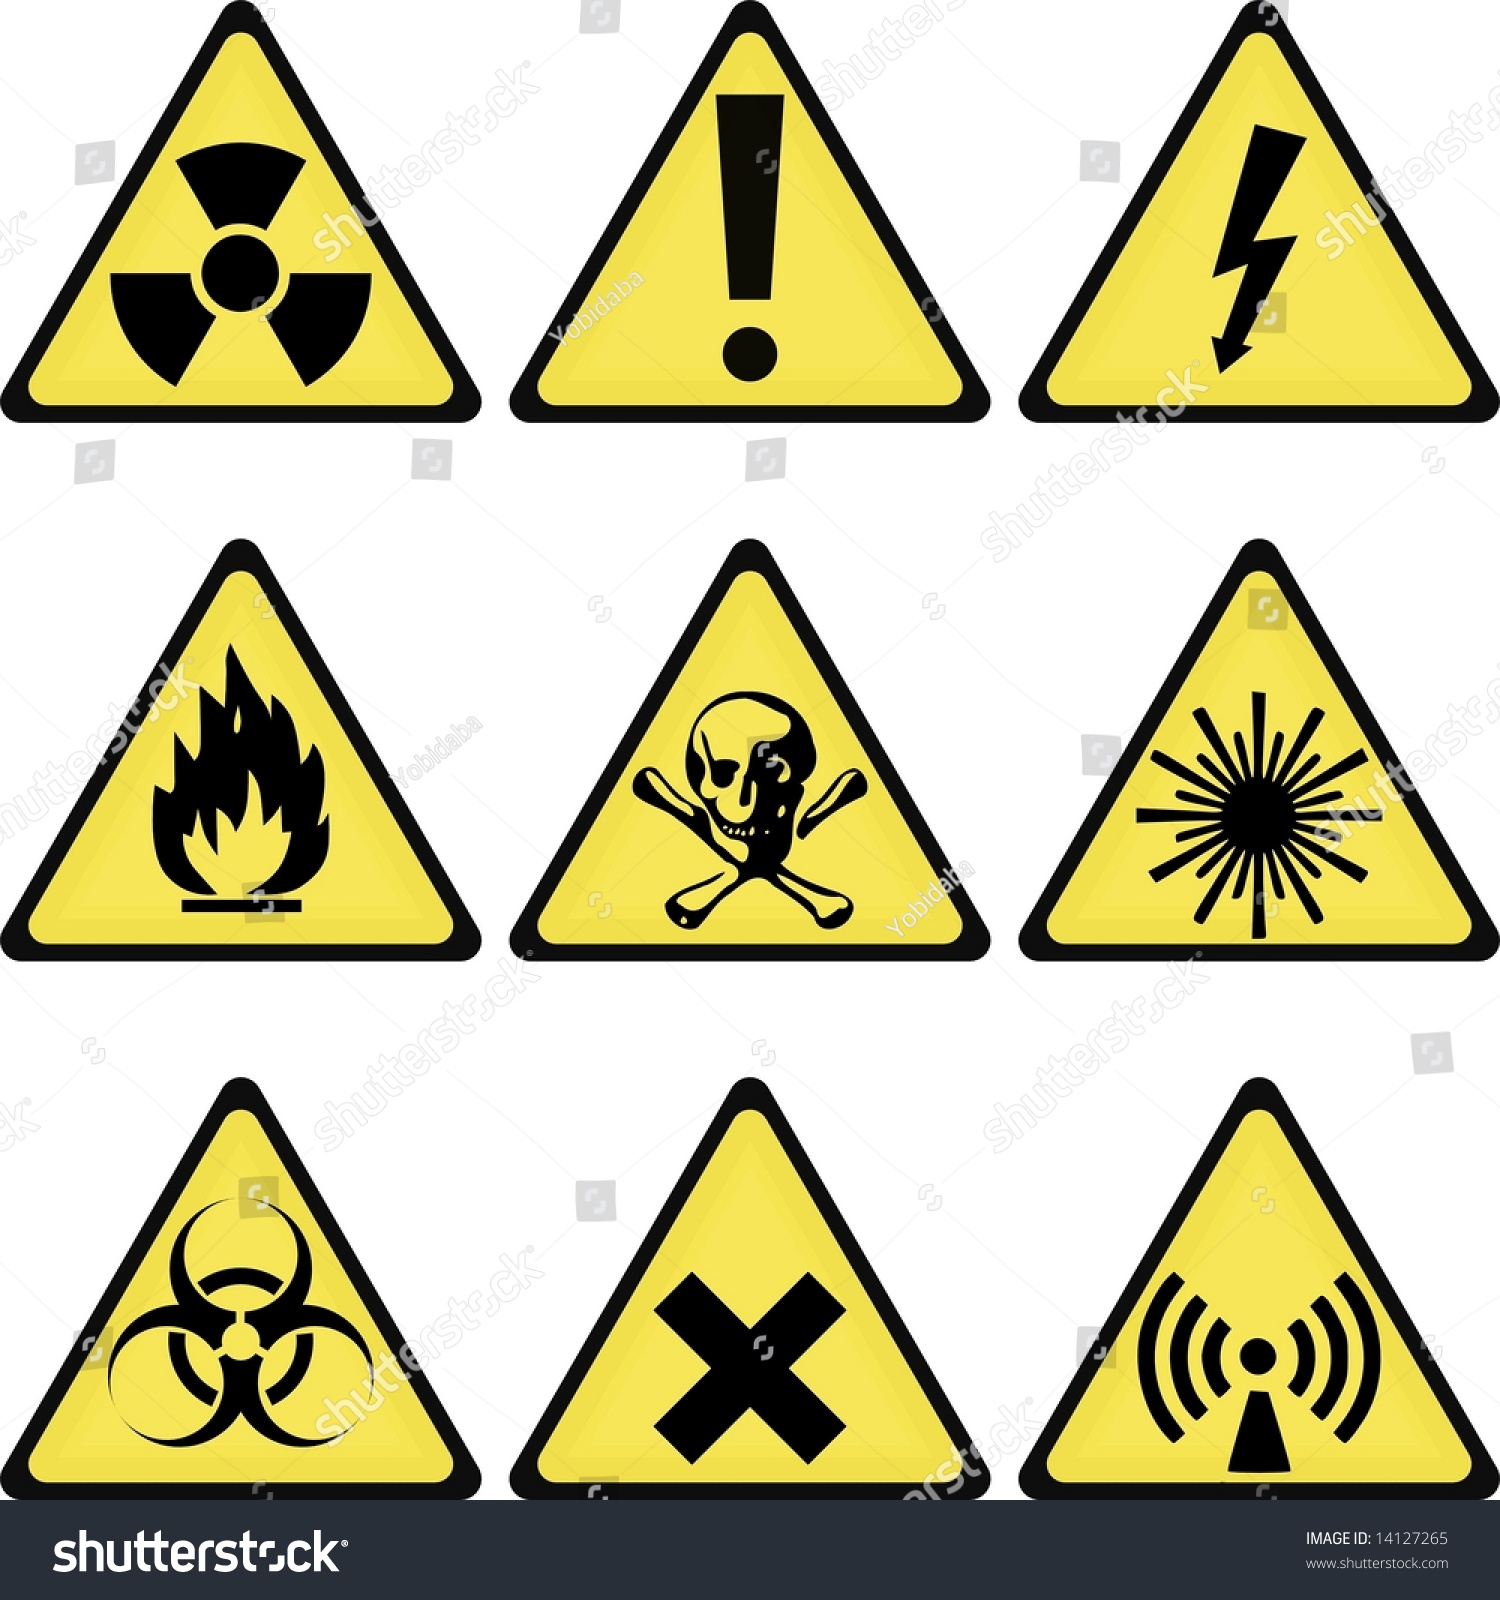 Industrial Laboratory Warning Signs Collection Stock Illustration